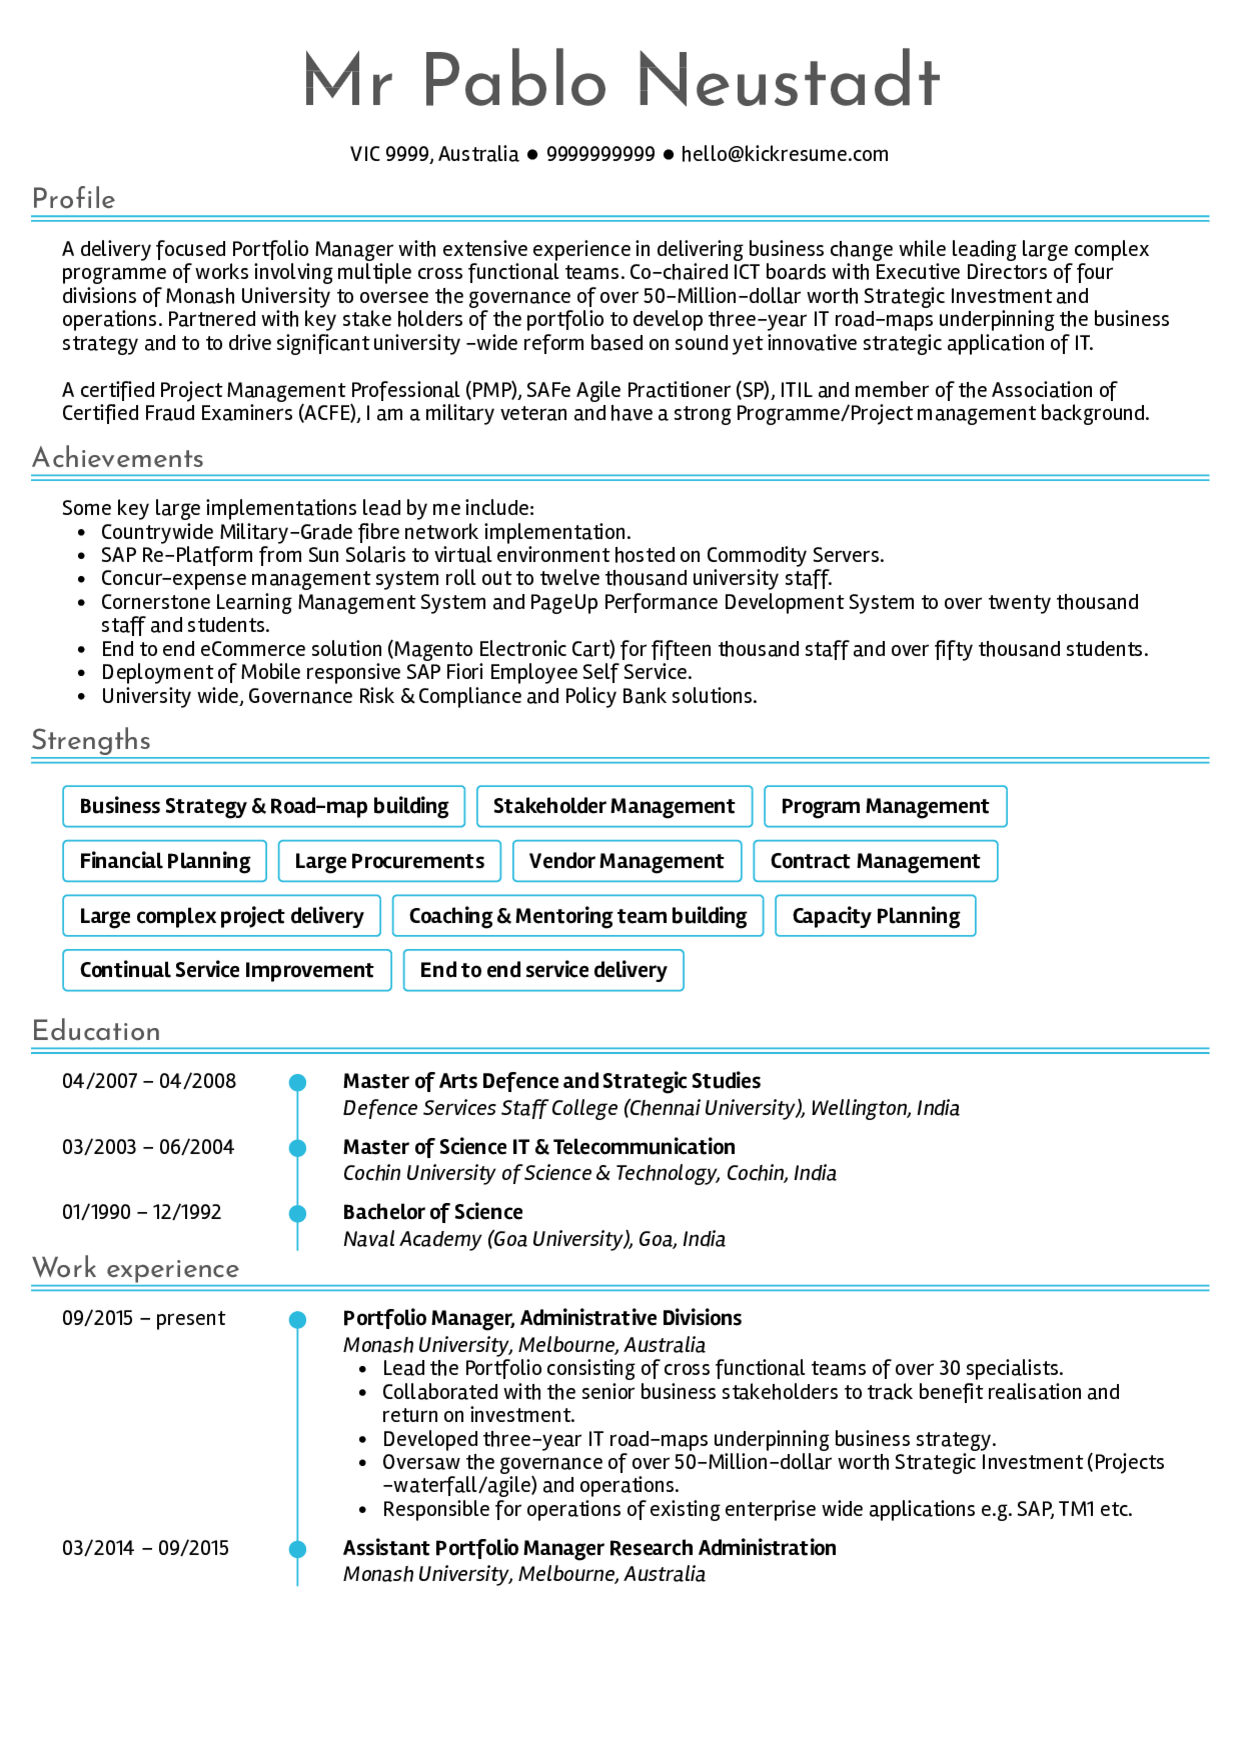 Senior Project Manager Resume Samples, Senior Project